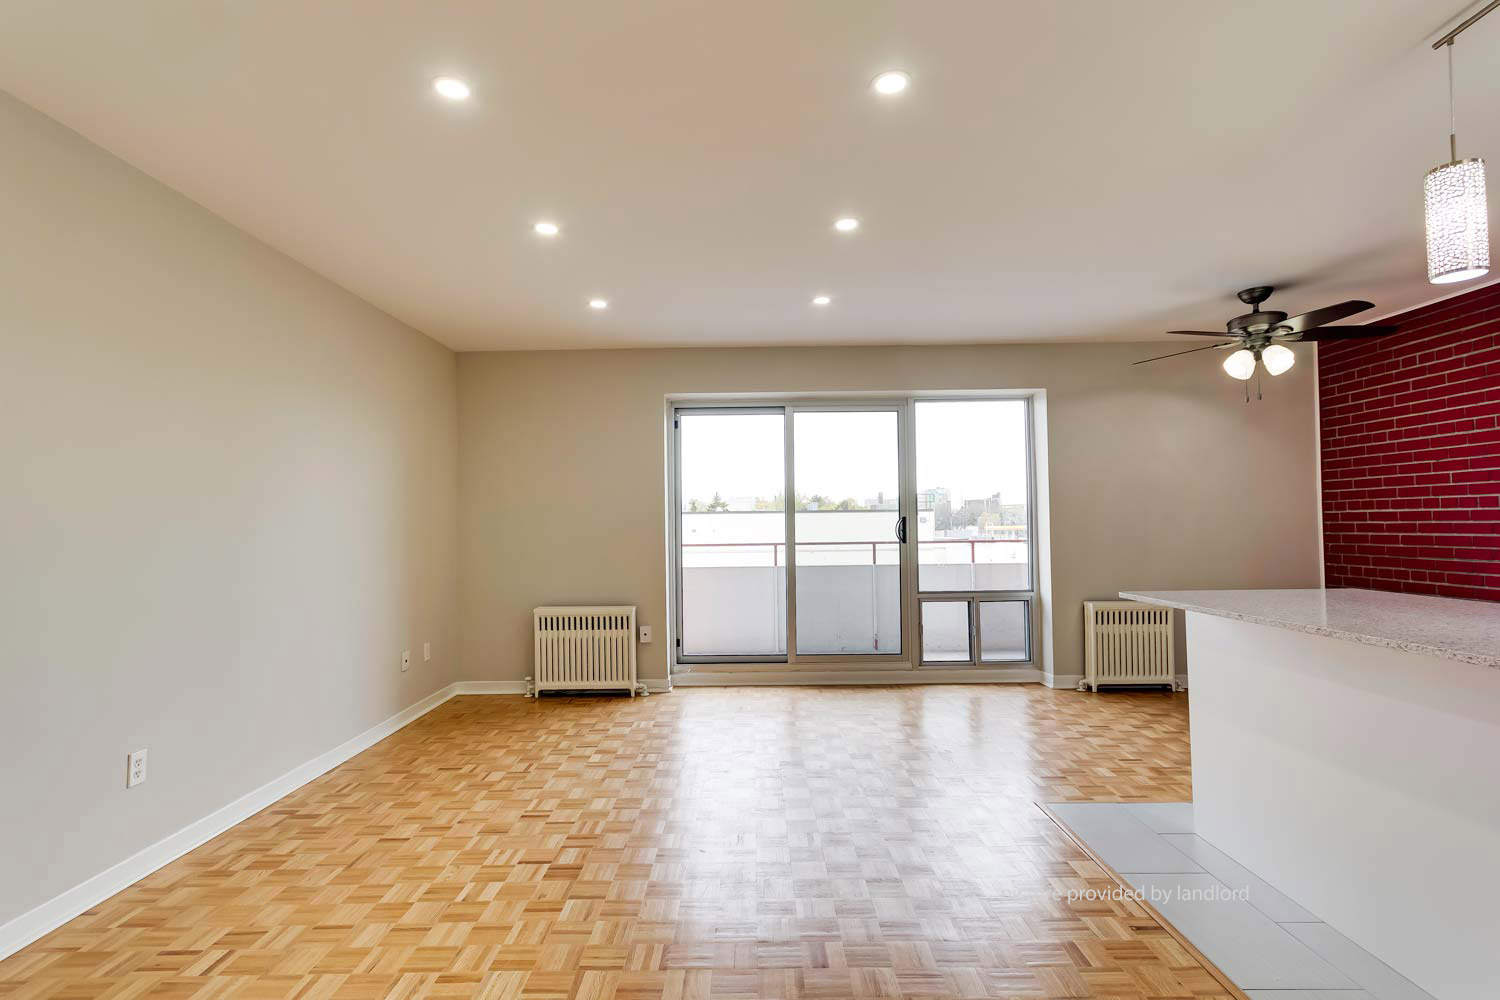 3125 Lawrence Ave E, SCARBOROUGH, ON : 3+ Bedroom for rent ...